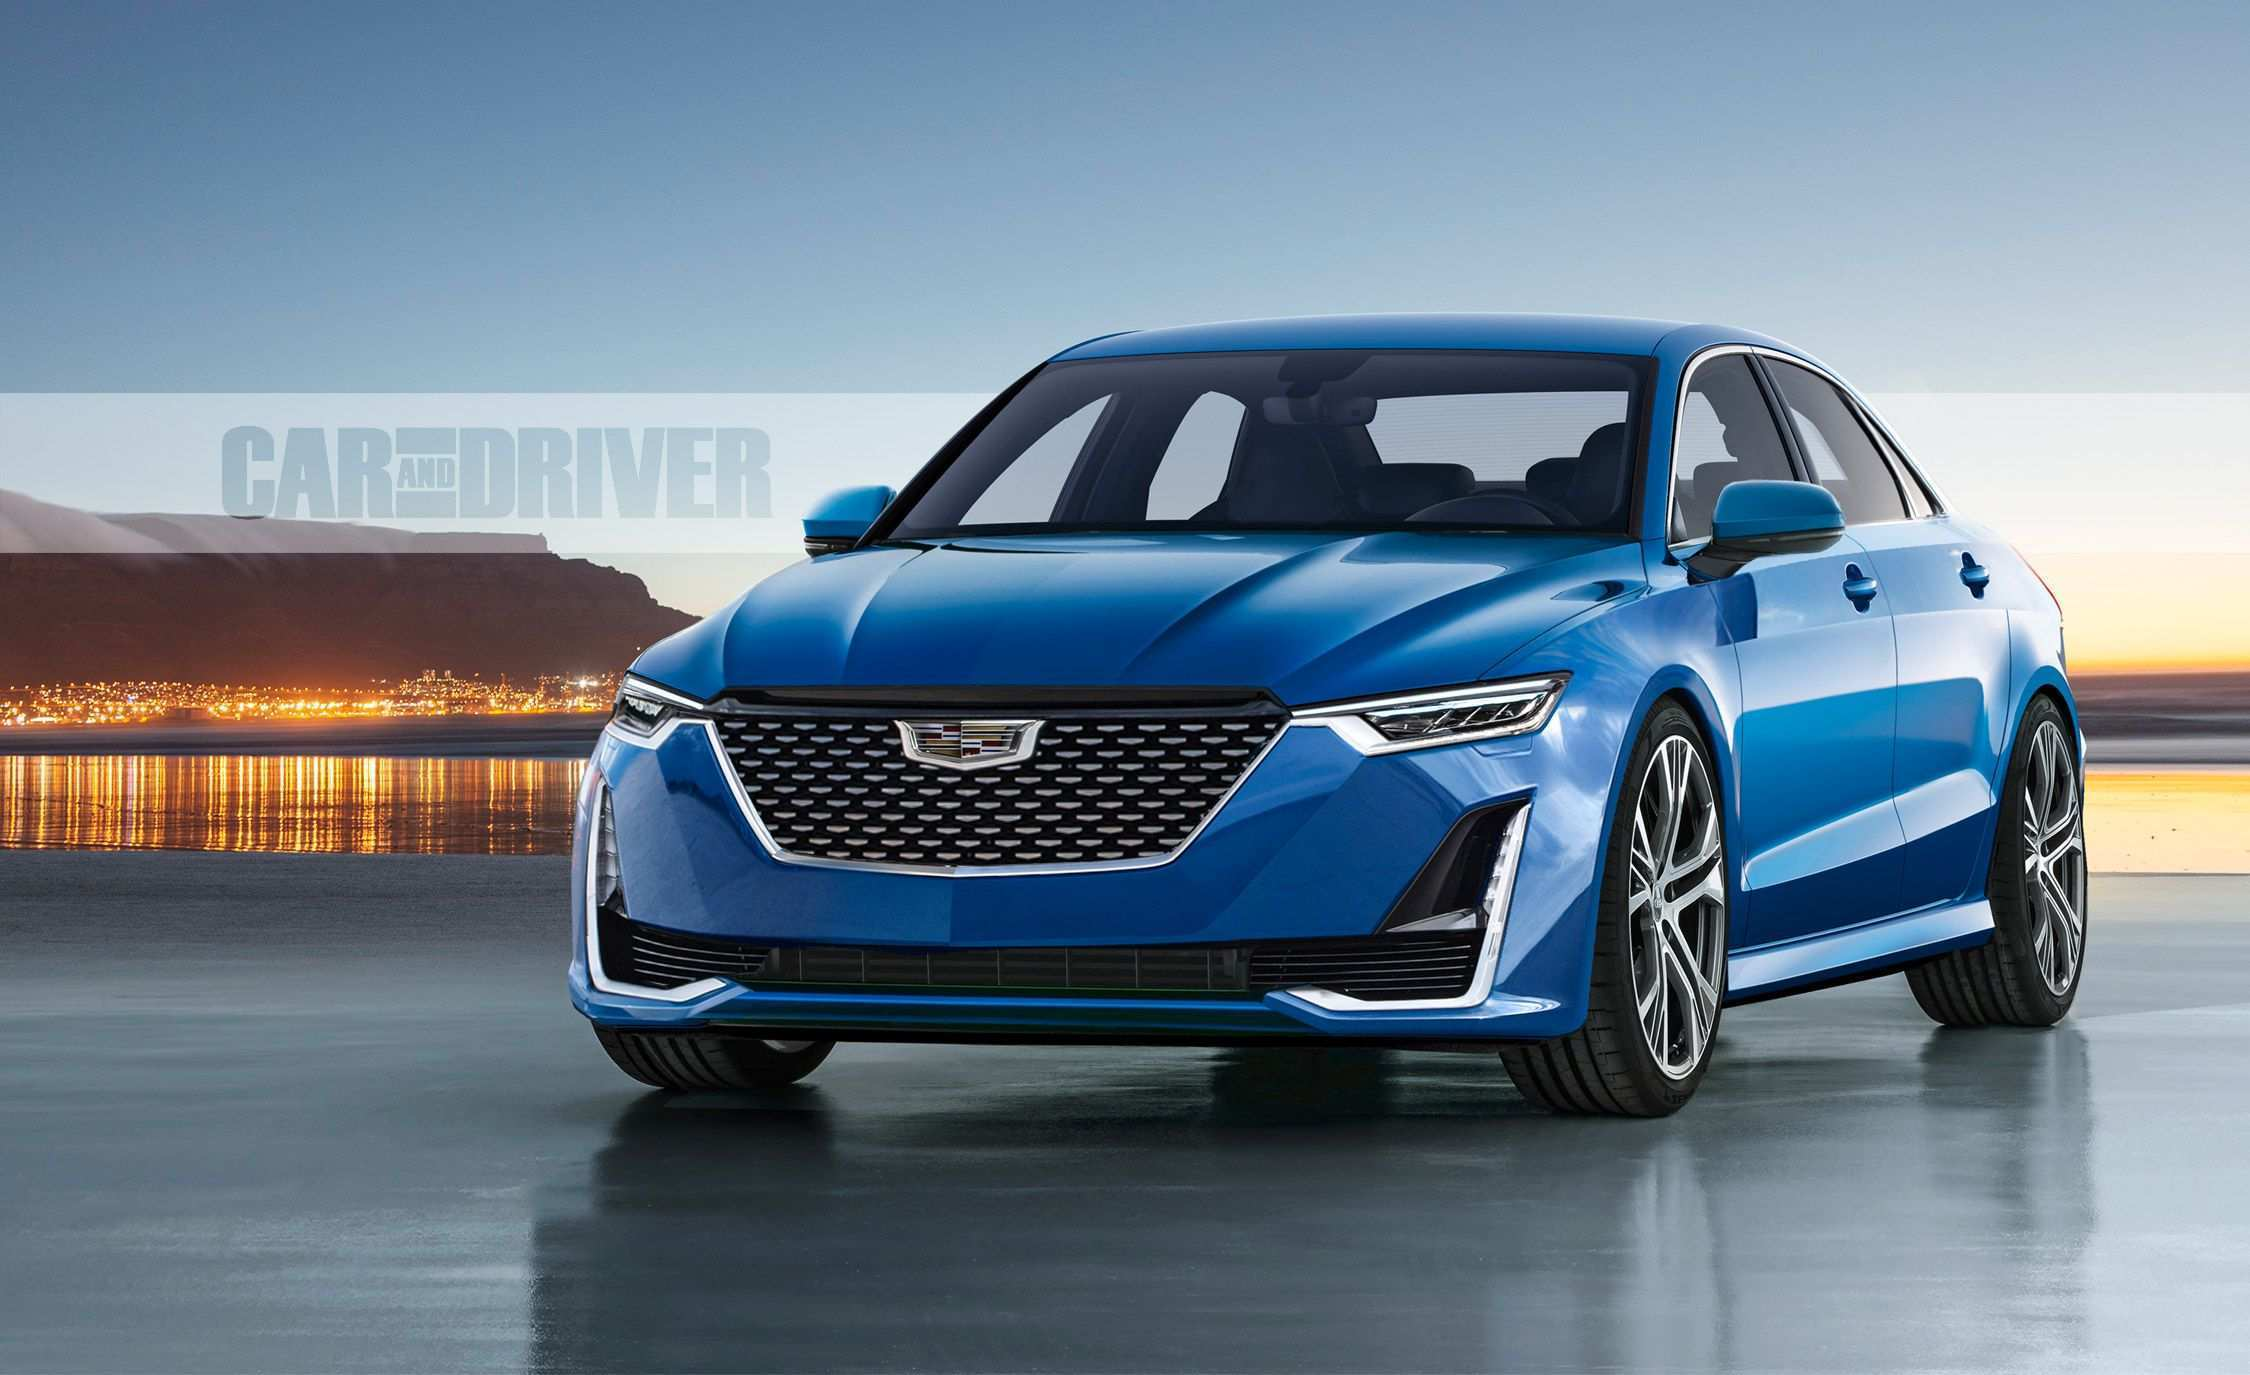 49 All New 2020 Candillac Xts Picture for 2020 Candillac Xts